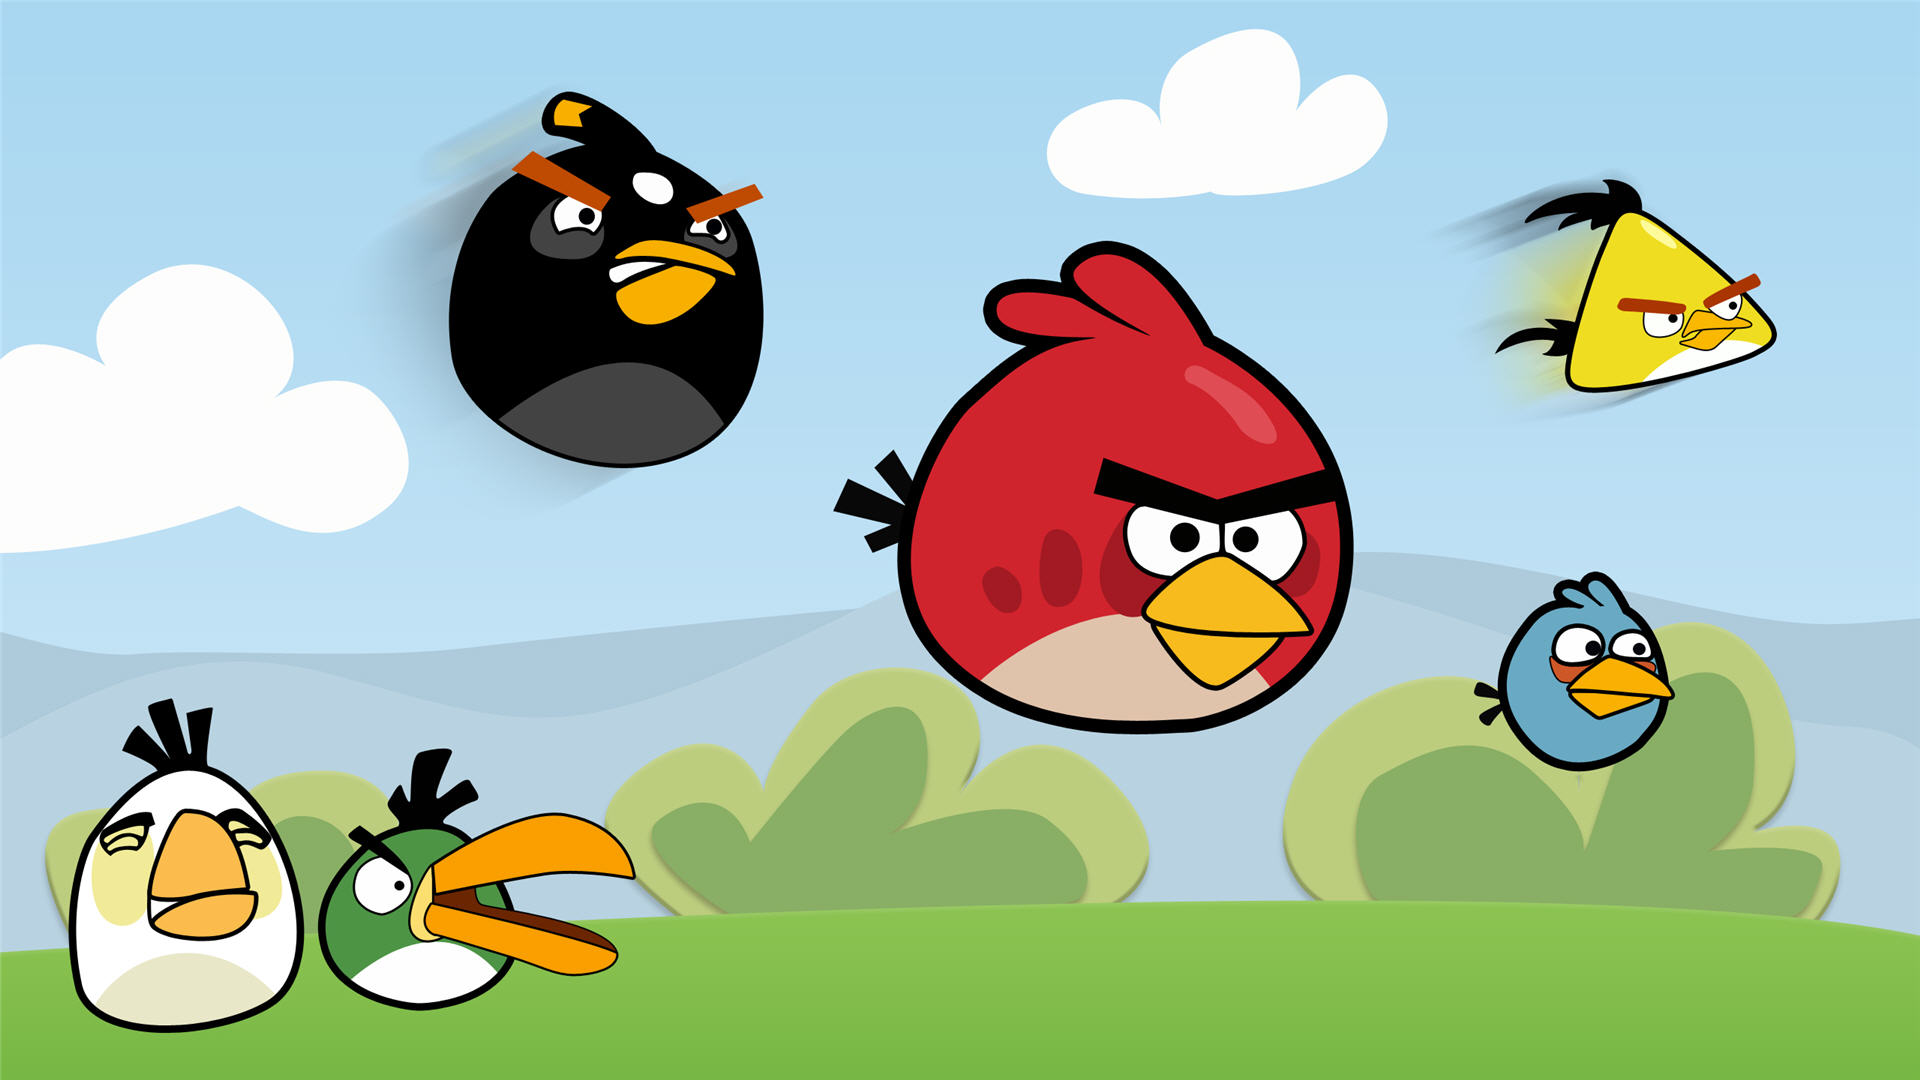 Angry birds game HD wallpaper - MYTECHSHOUT